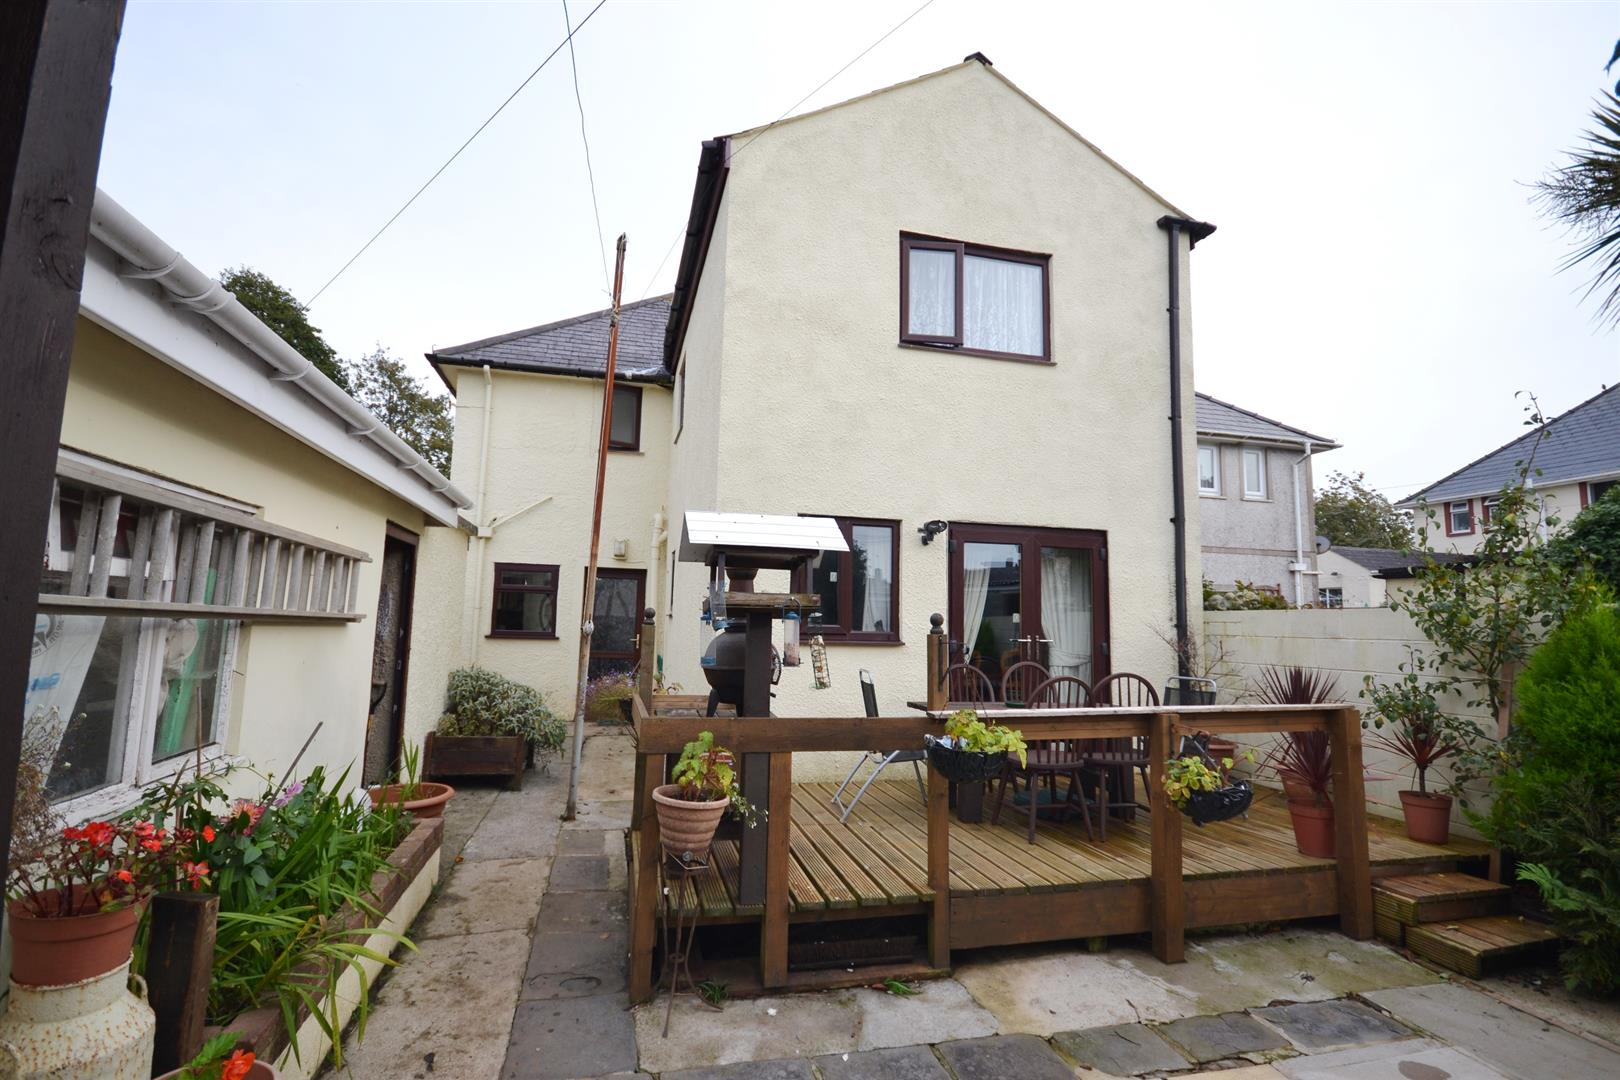 St. Johns Road, Pembroke Dock, SA72